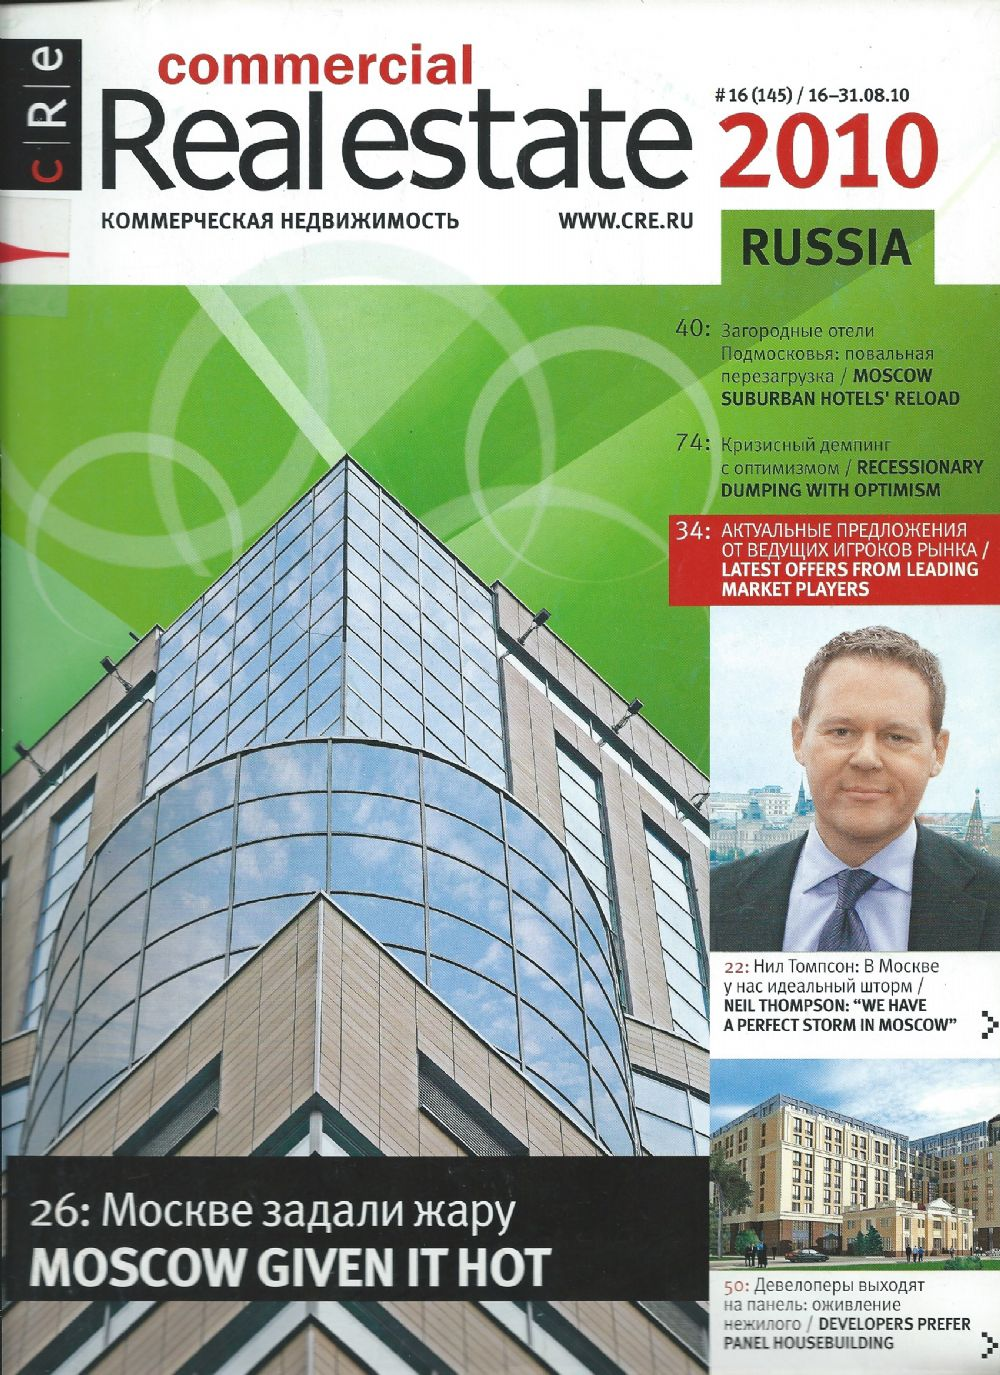 Contractors' Attitudes Towards Sustainable Buildings in the Russian Market